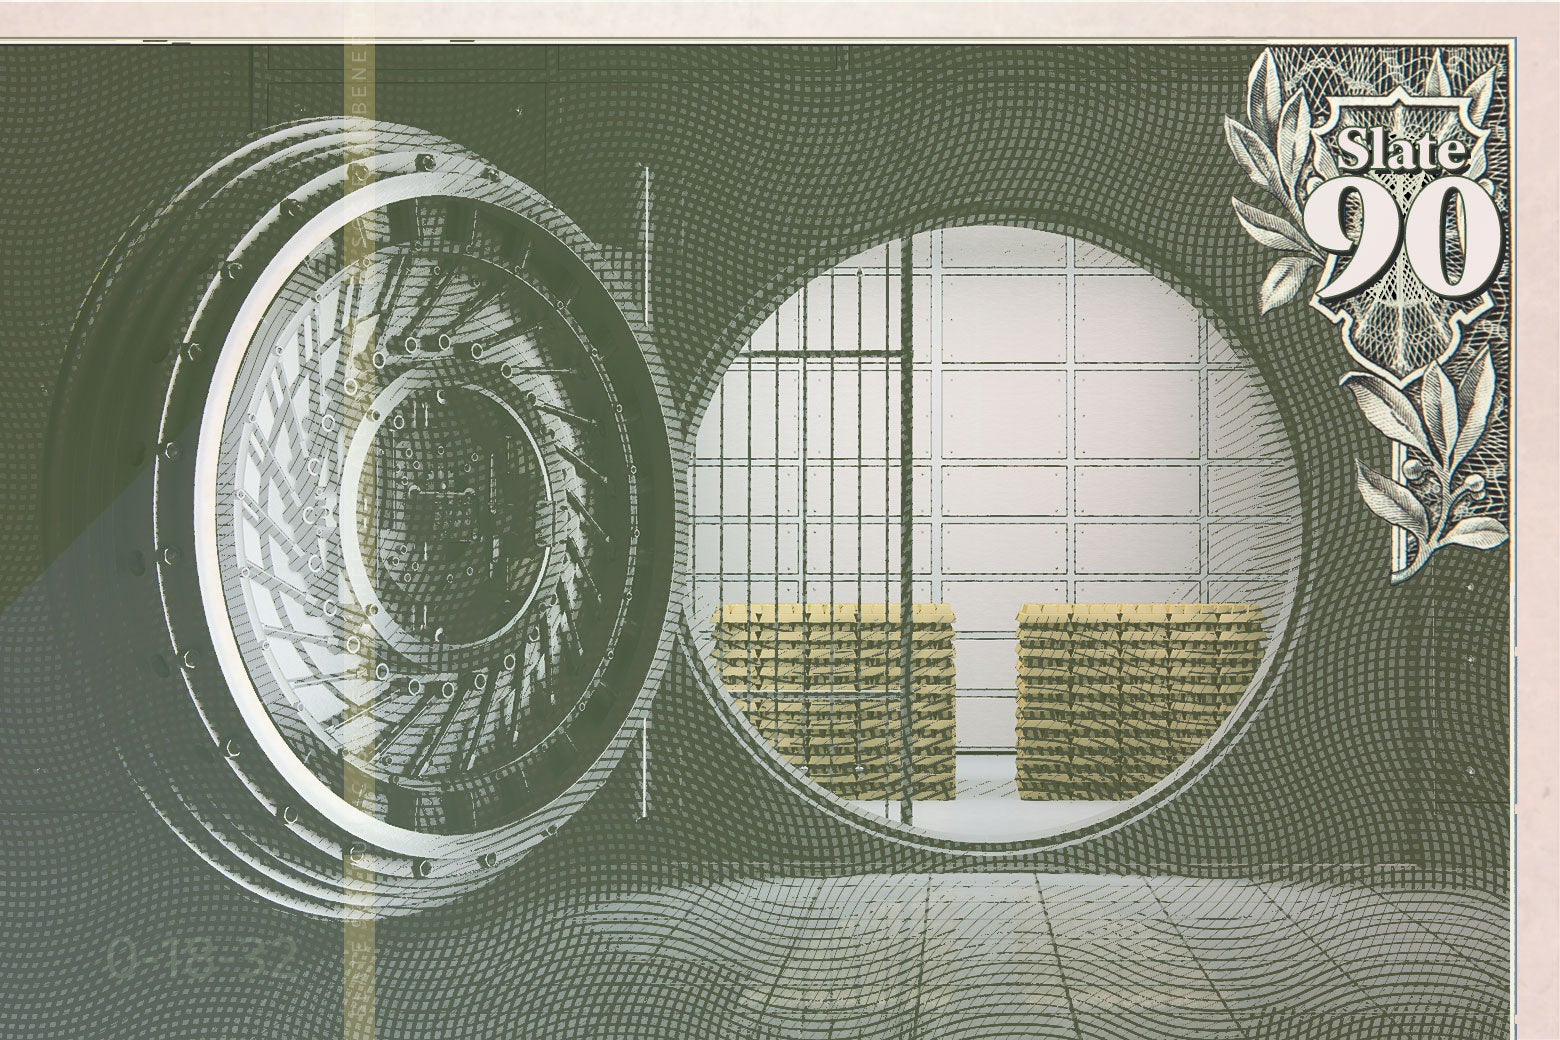 Paper currency showing an open bank vault.